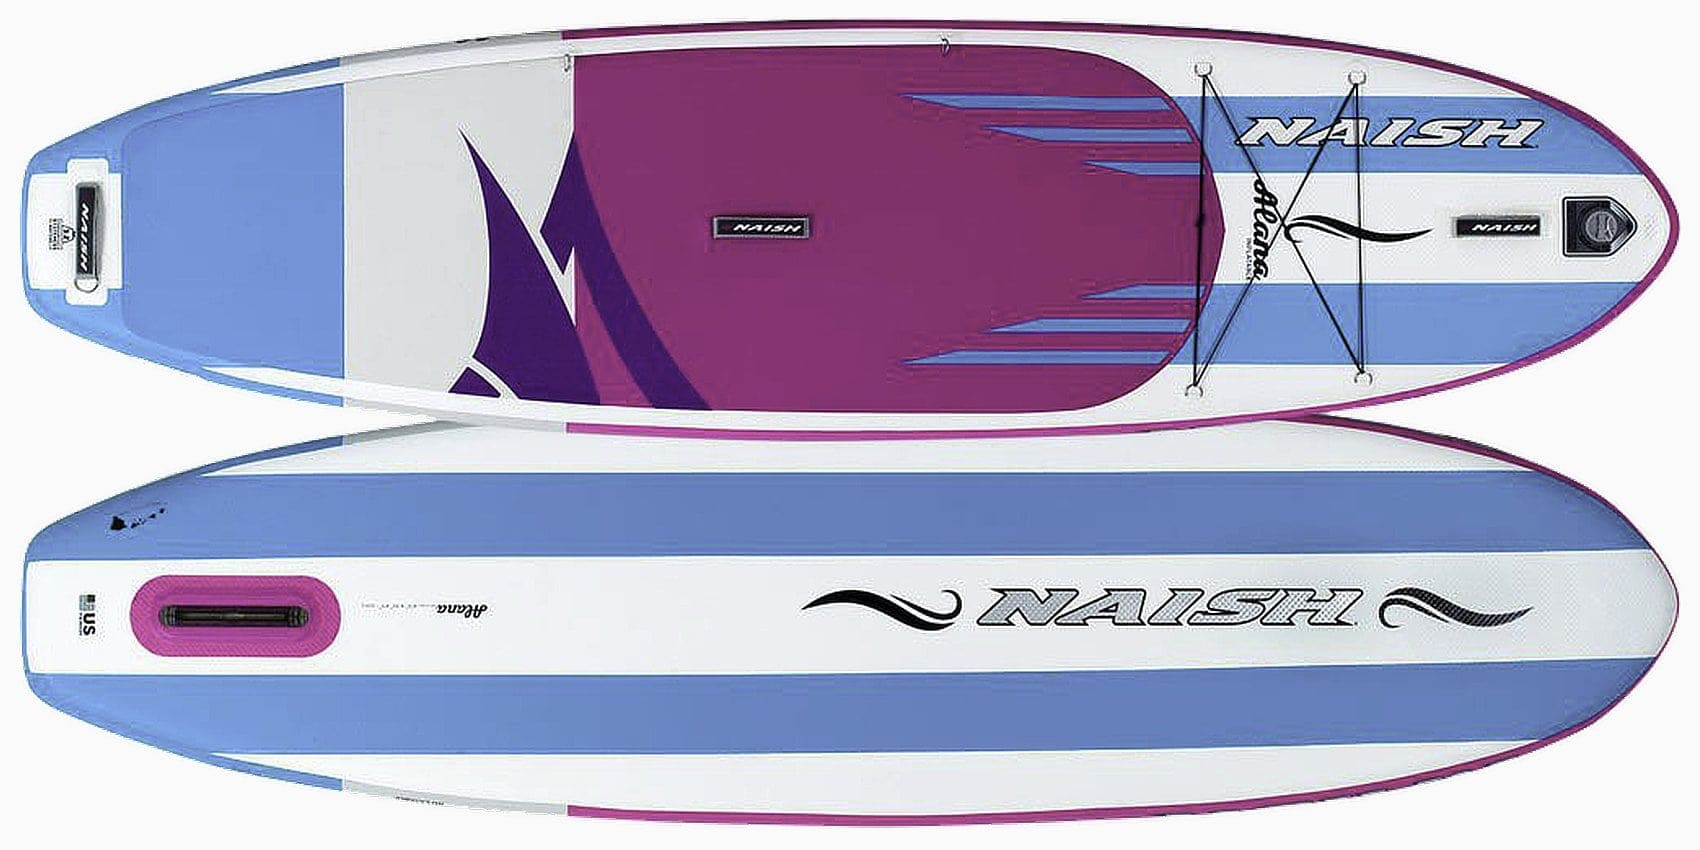 "Naish Alana 10'6"" X32 Inflatable SUP"